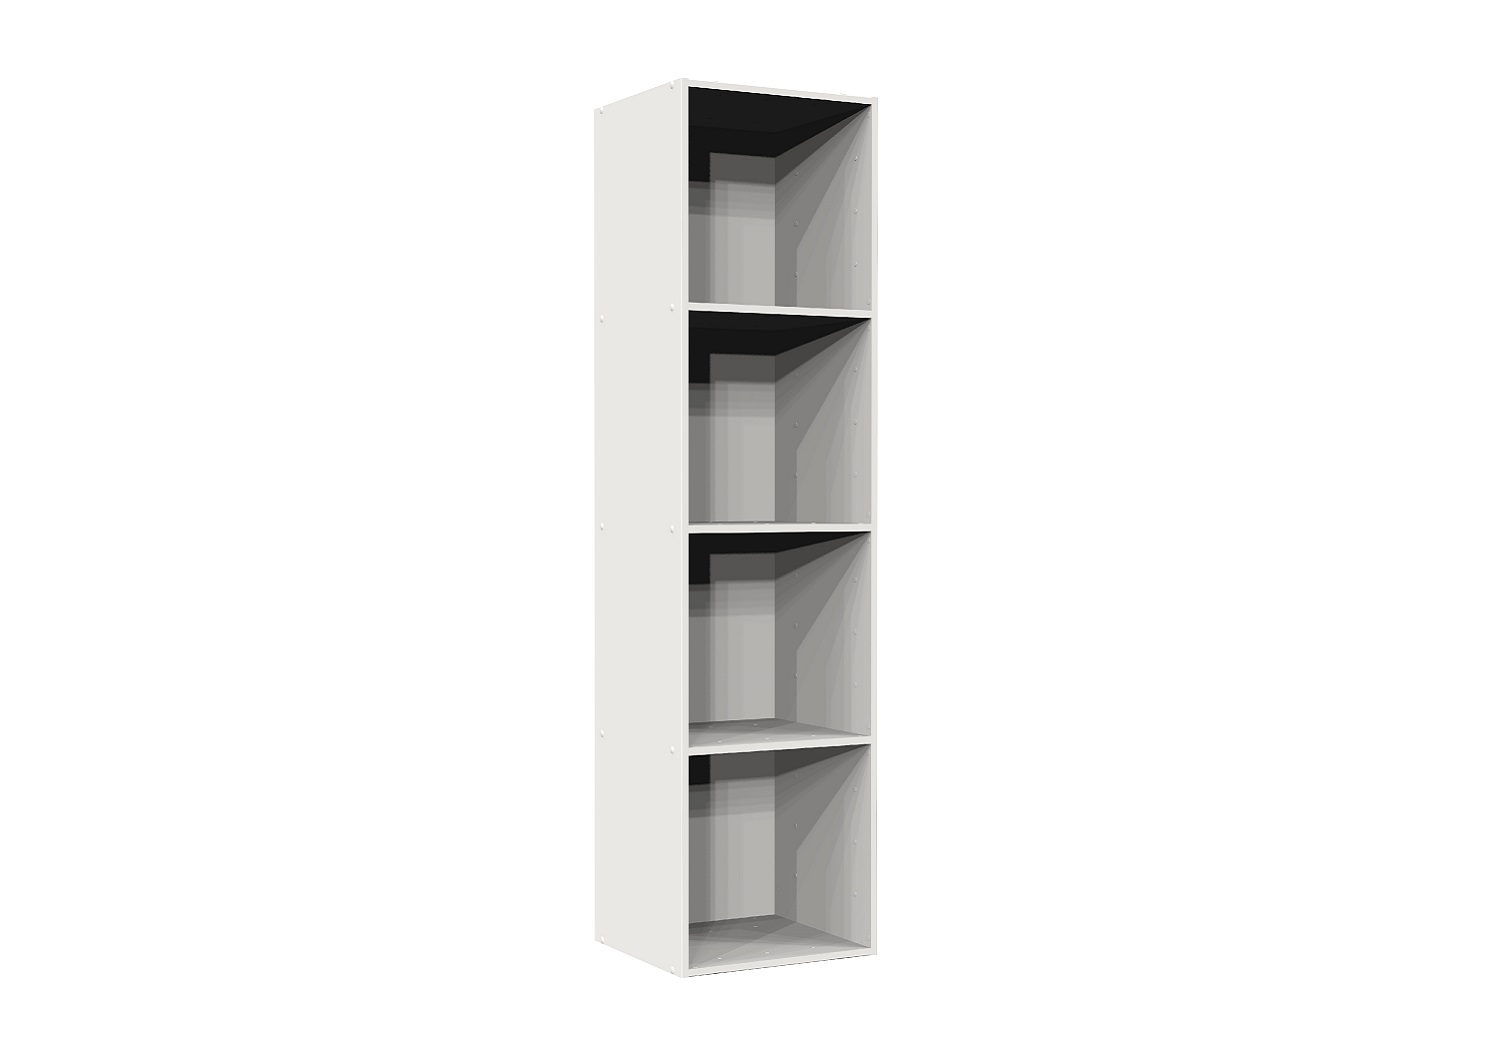 Bilrich Storage Furniture - Multi Kaz 4x1 Cube White